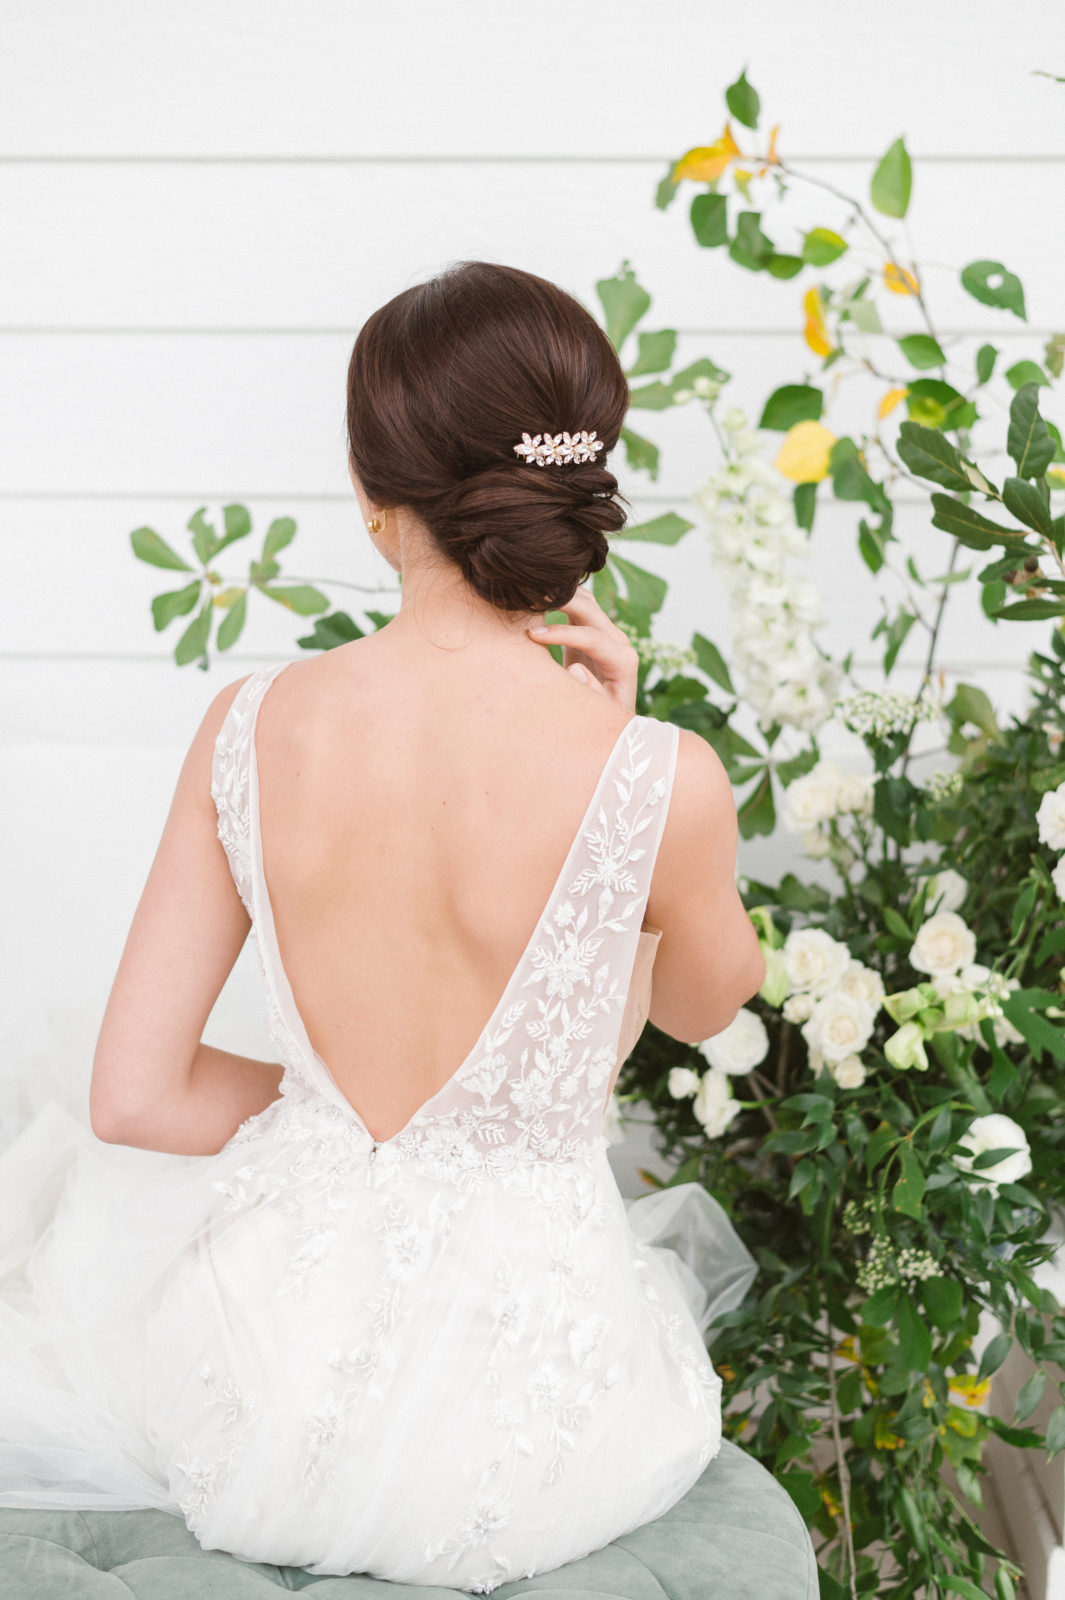 DFW Tousled Bridal Updo: Delightful Wedding Inspiration at The Pearl featured on Alexa Kay Events